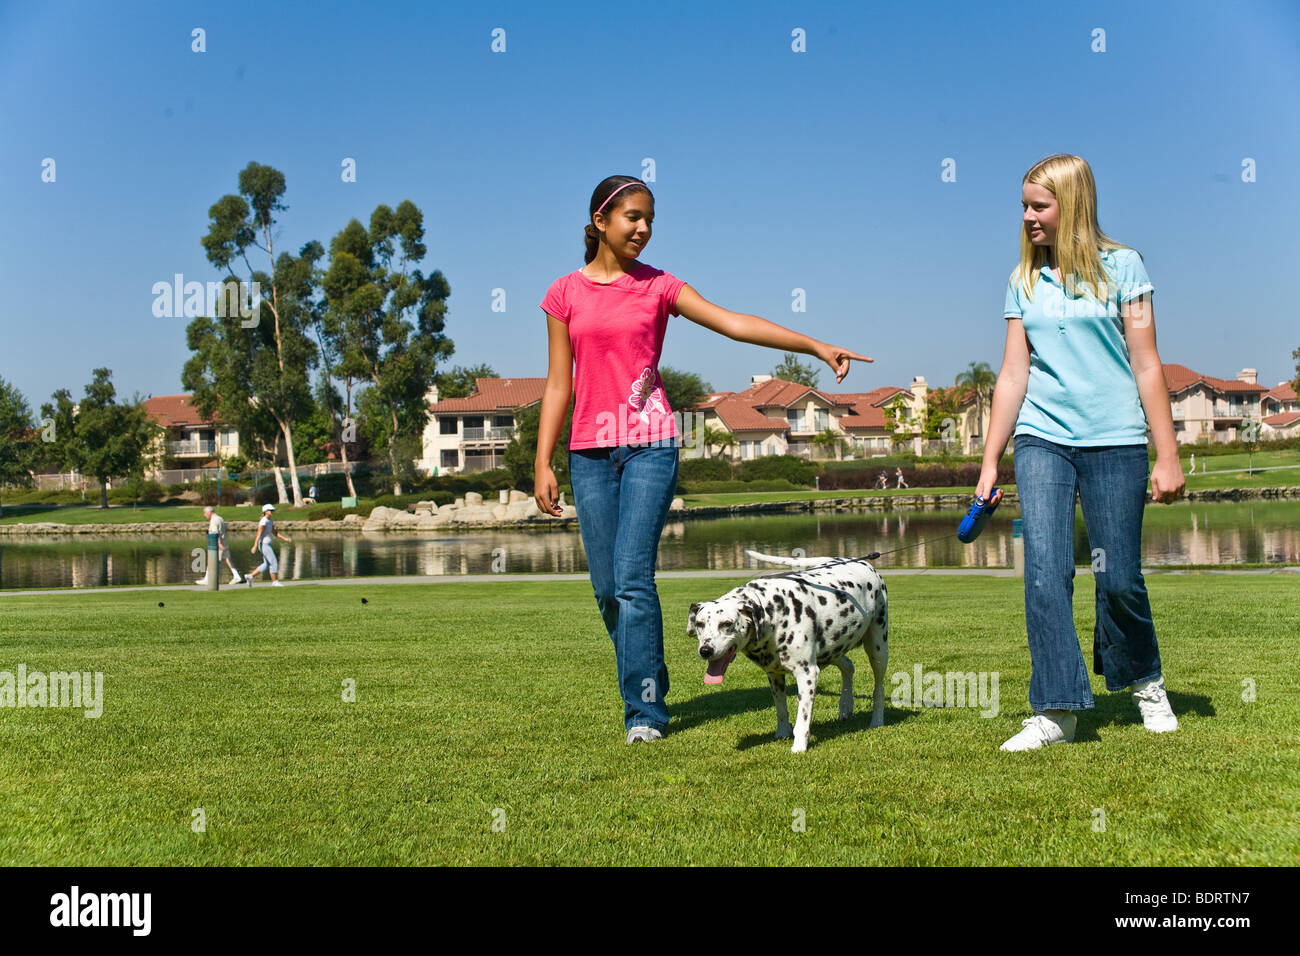 Tween tweens hanging out racially mixed racial mix Multi ethnic Hispanic and Caucasian teenage girls walking dalmatian - Stock Image